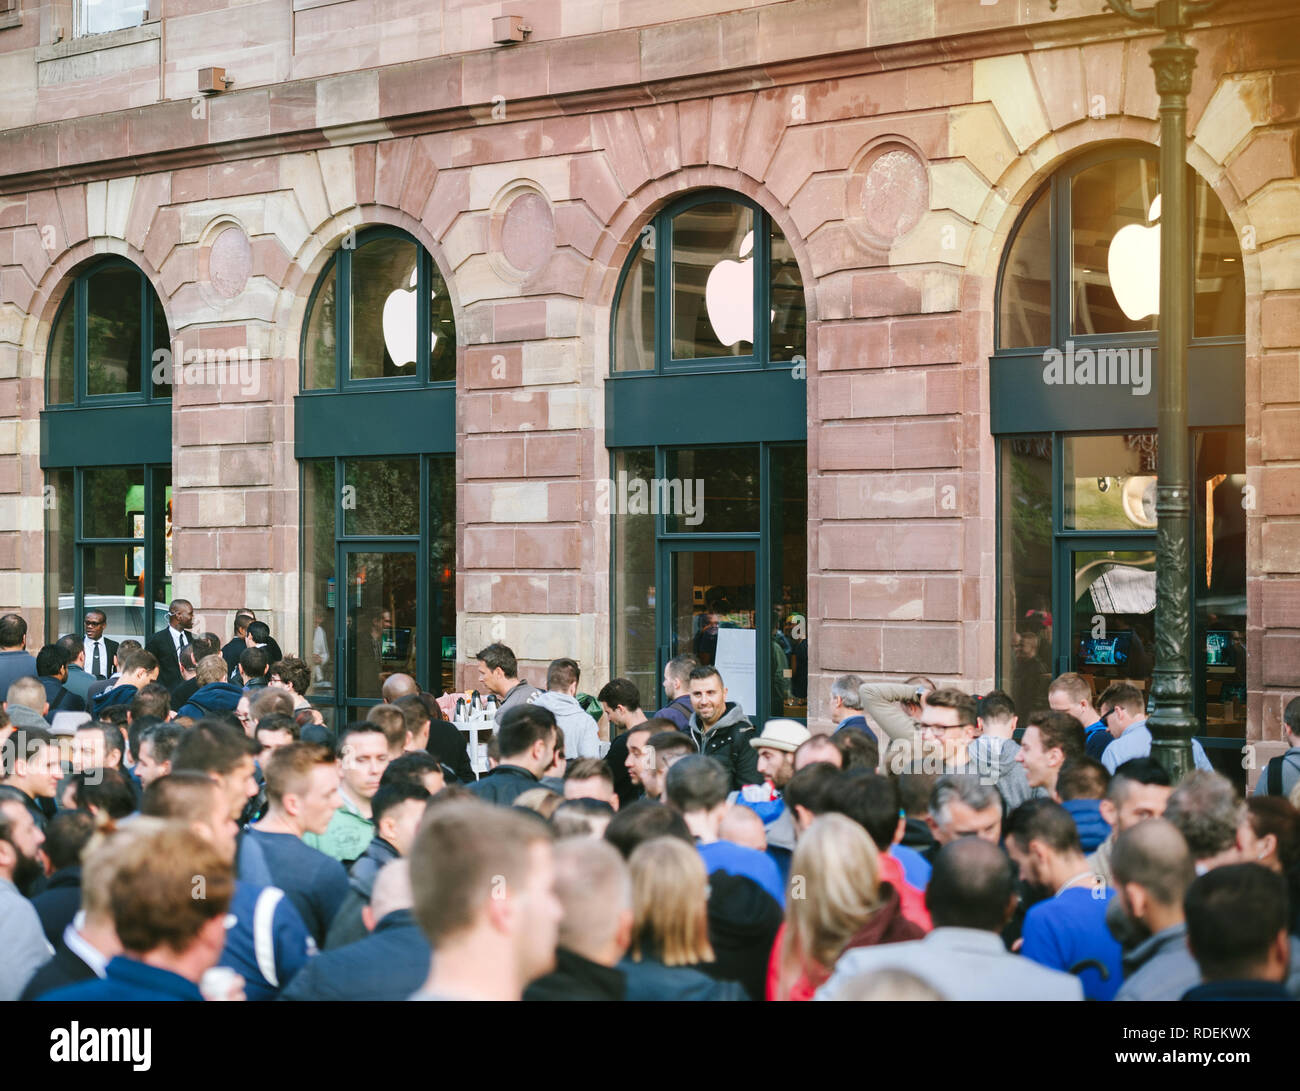 STRASBOURG, FRANCE - SEP, 19 2014: Apple Store with customers waiting in line to buy the latest iPhone iPad Apple Watch and notebook Stock Photo